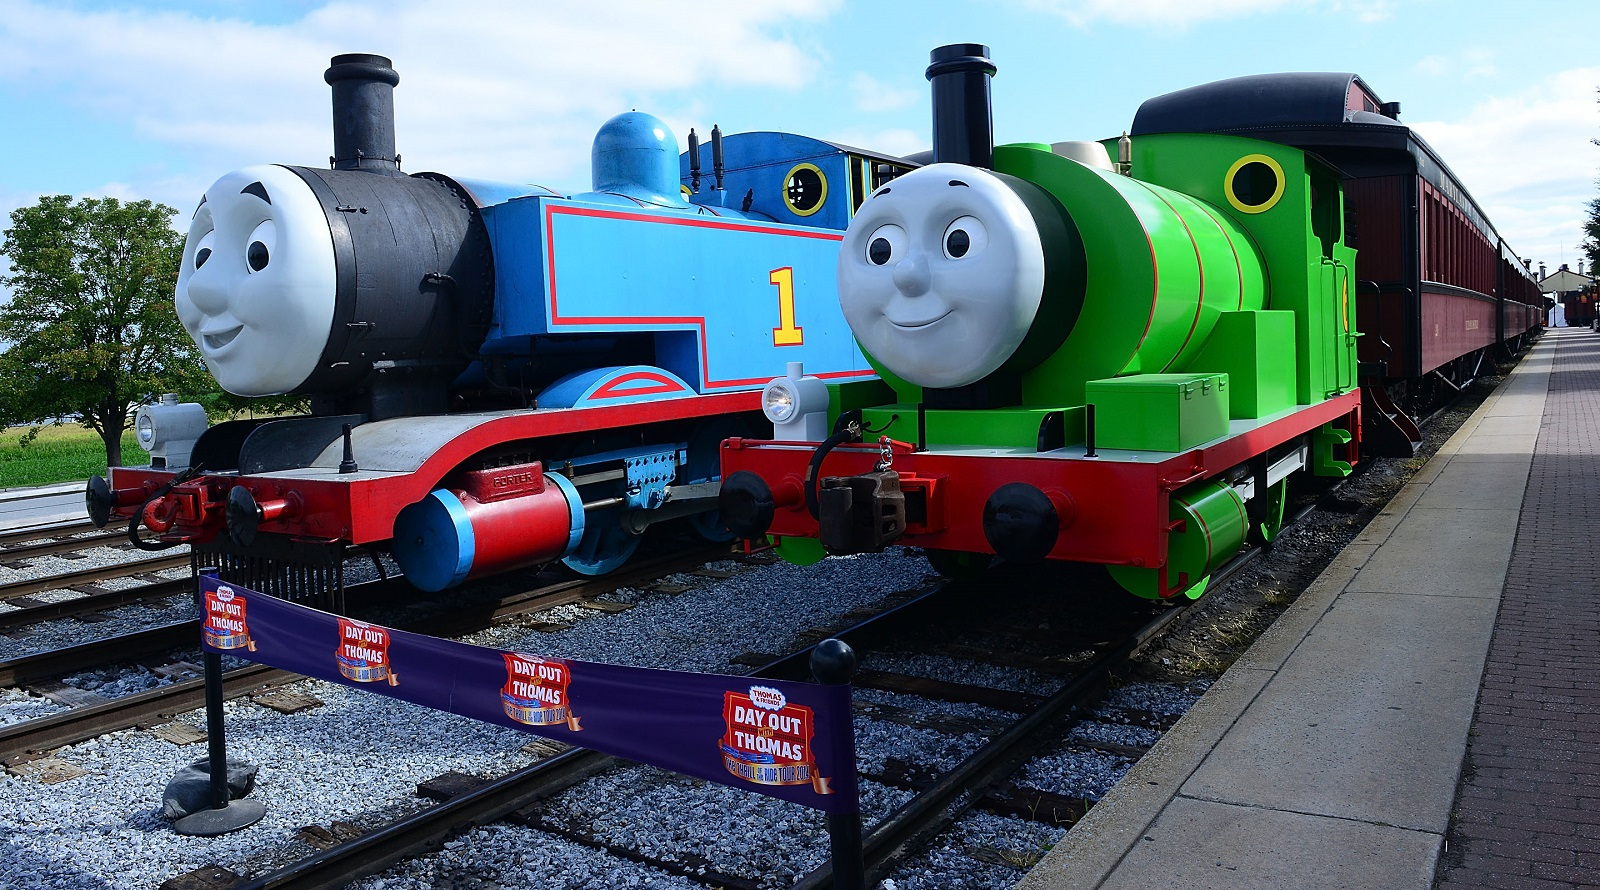 A Day Out with Thomas stops by Medina for some family fun. (Getty Images)